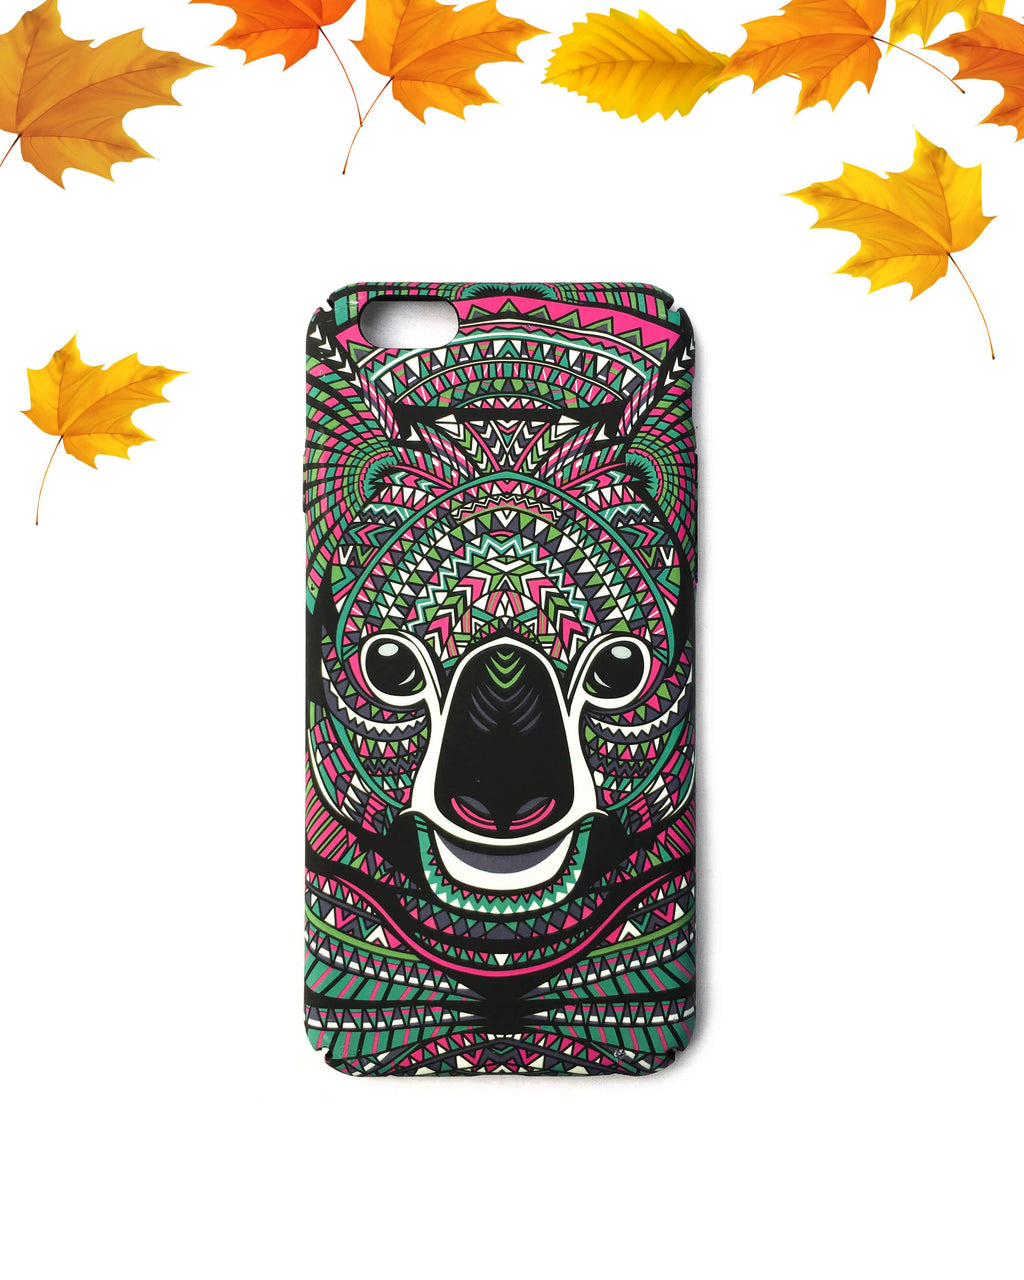 Koala iPhone Case (Glows in the Dark) - Cloud Accessories, LLC